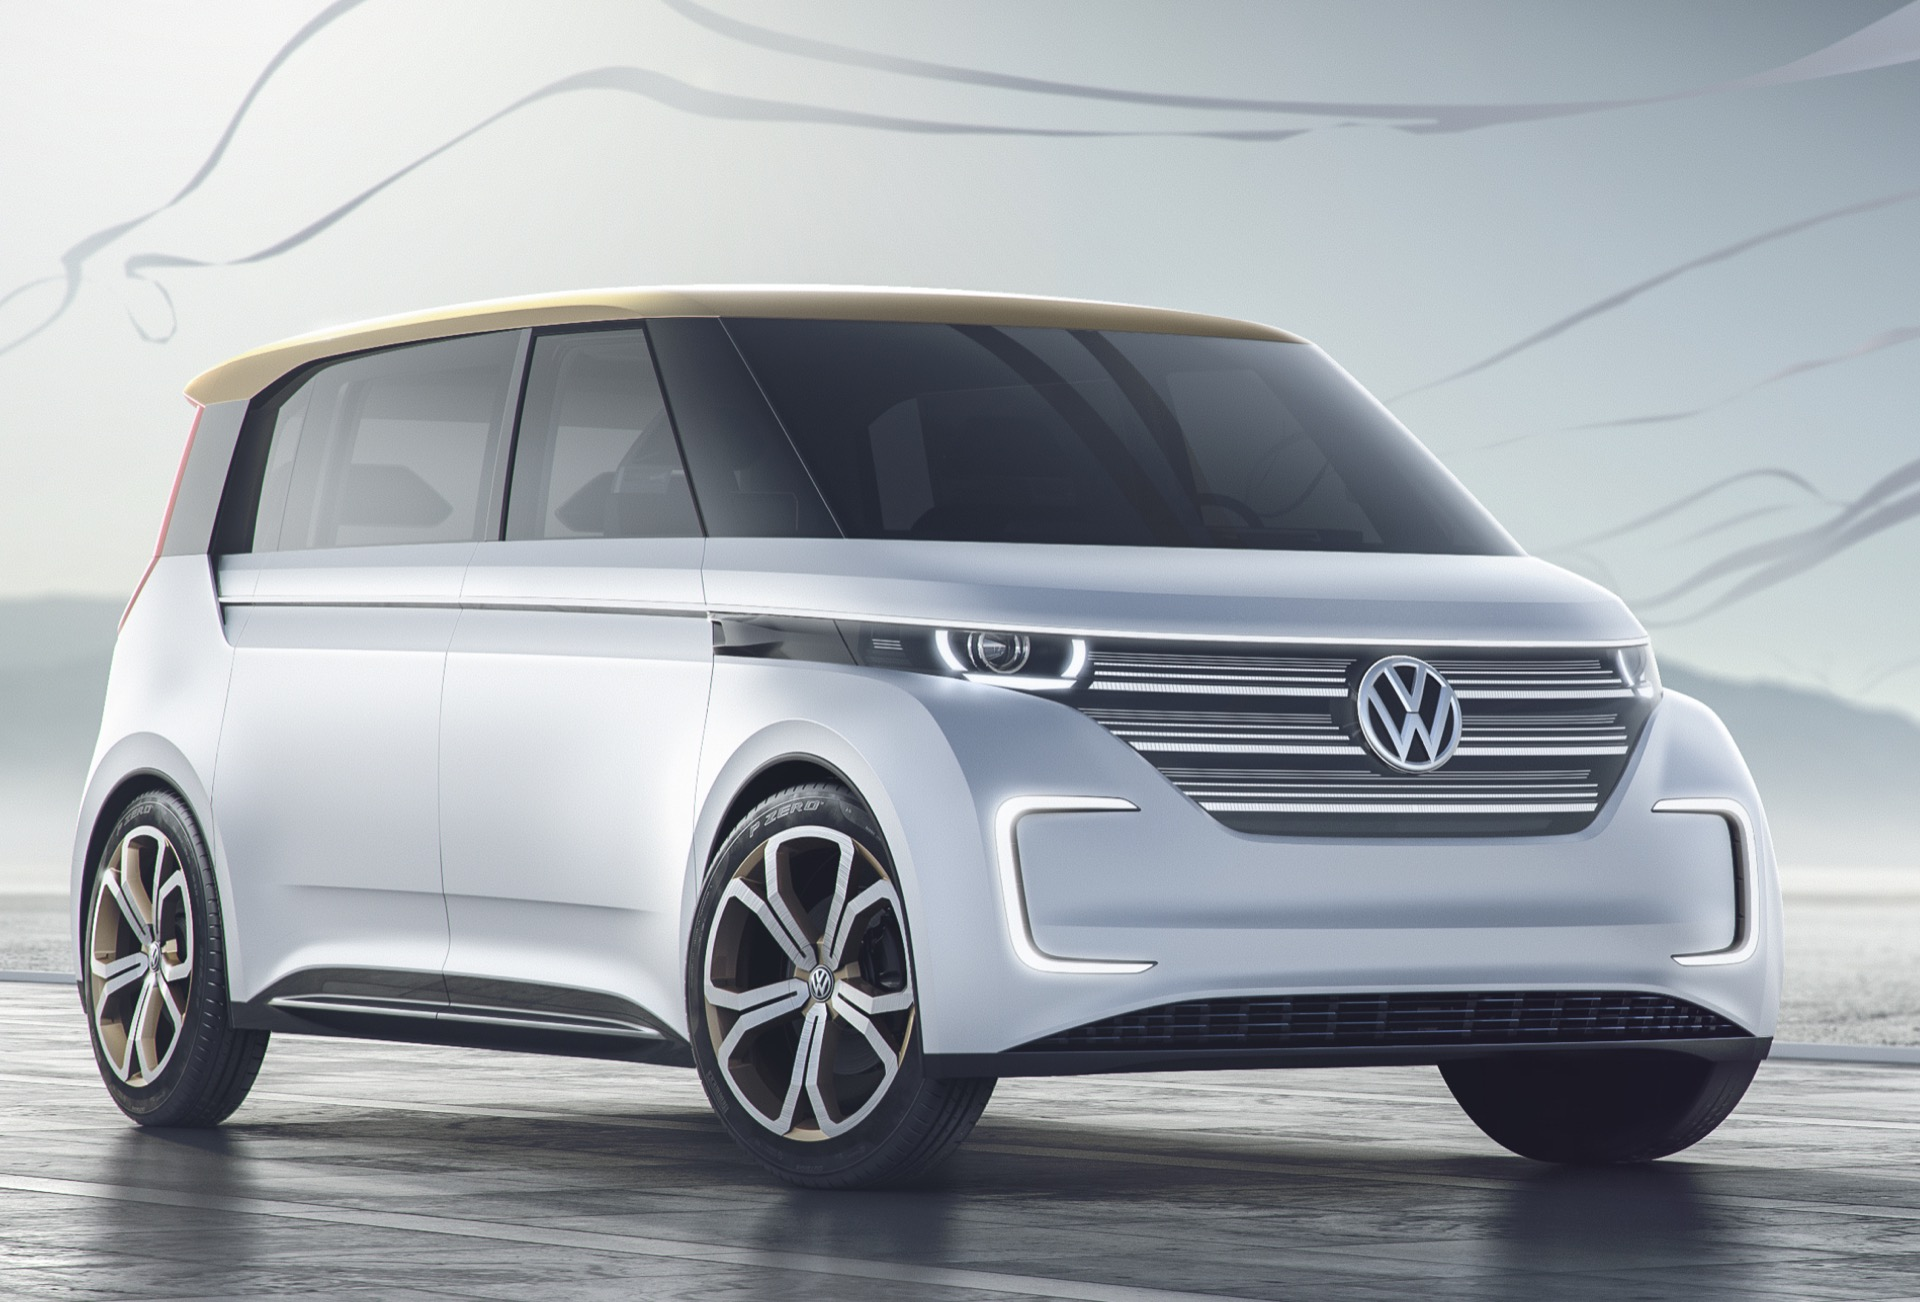 Report Vw Looking To Build Battery Plant Electric Car Platform For Larger Cars